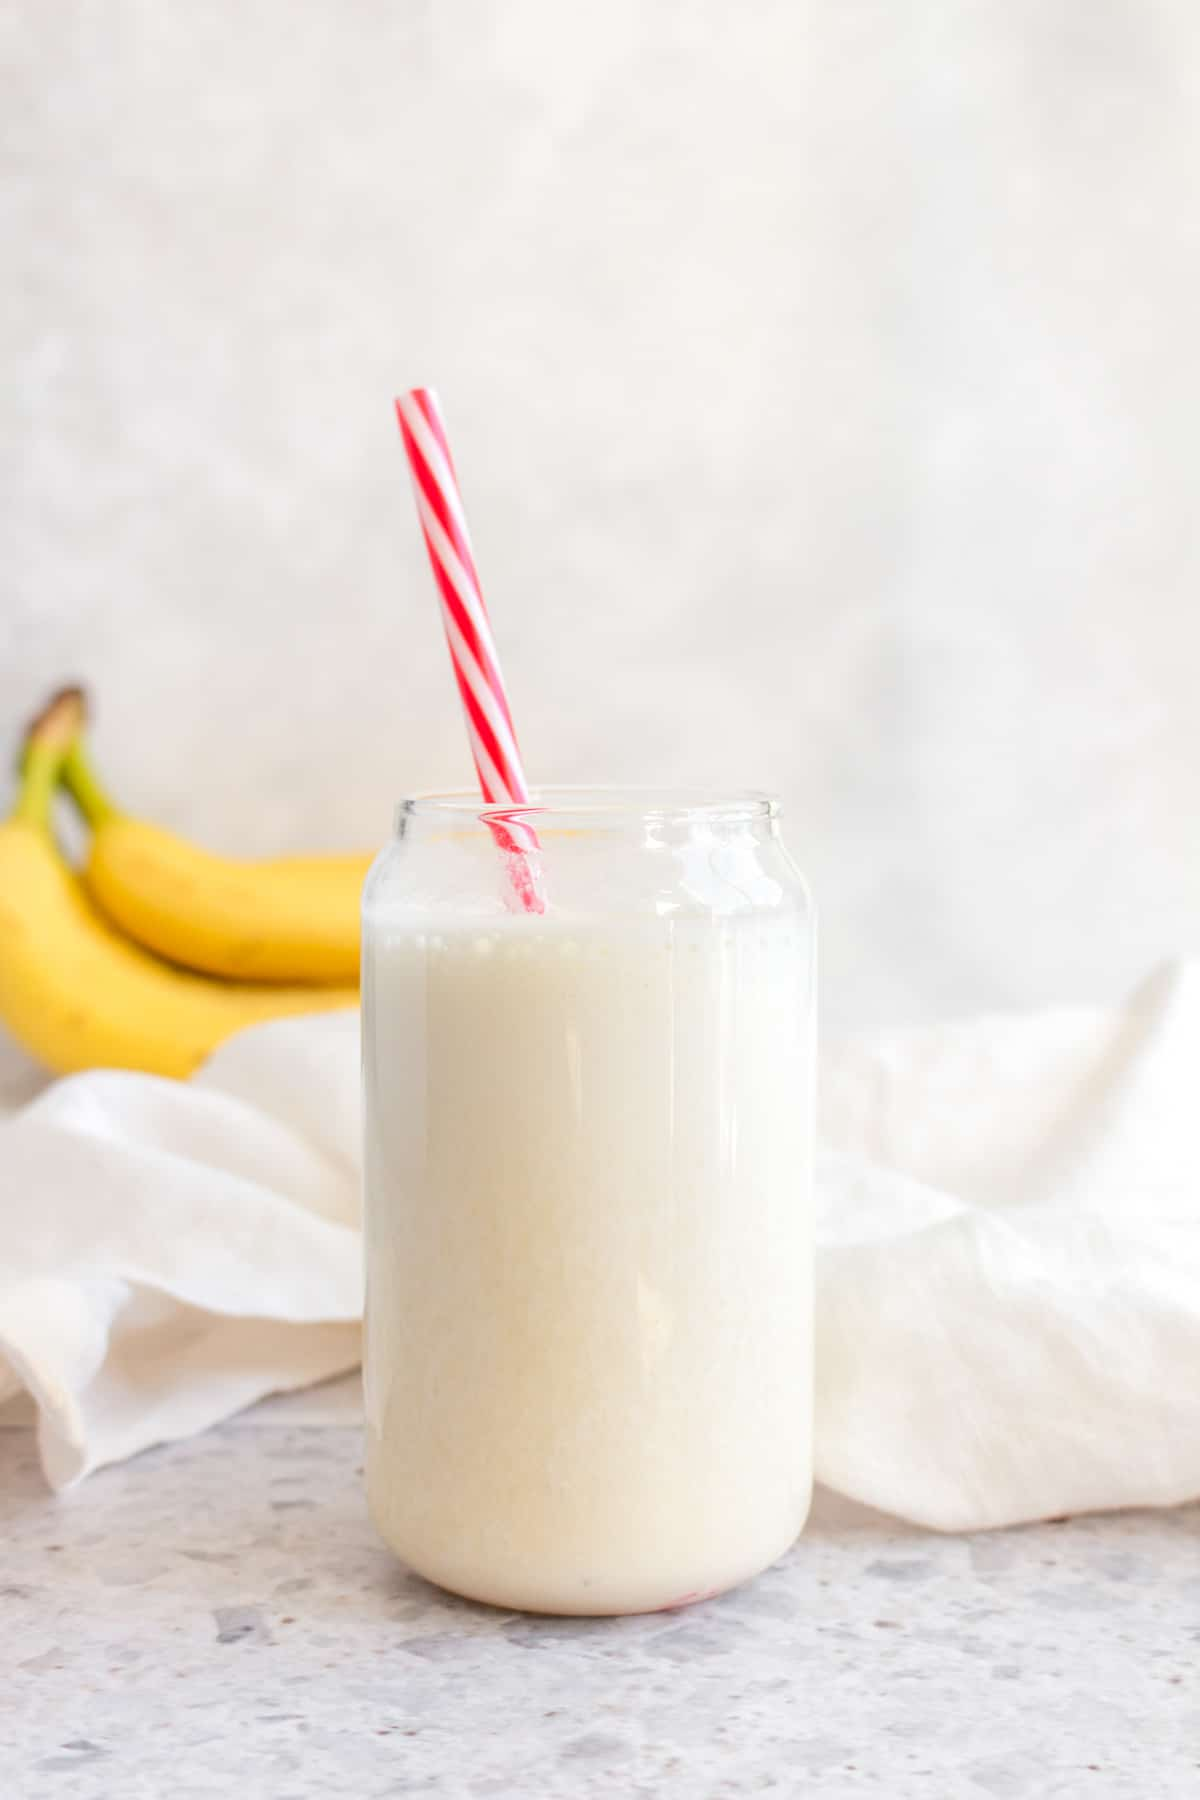 Banana milk in a cup with a red and white straw.